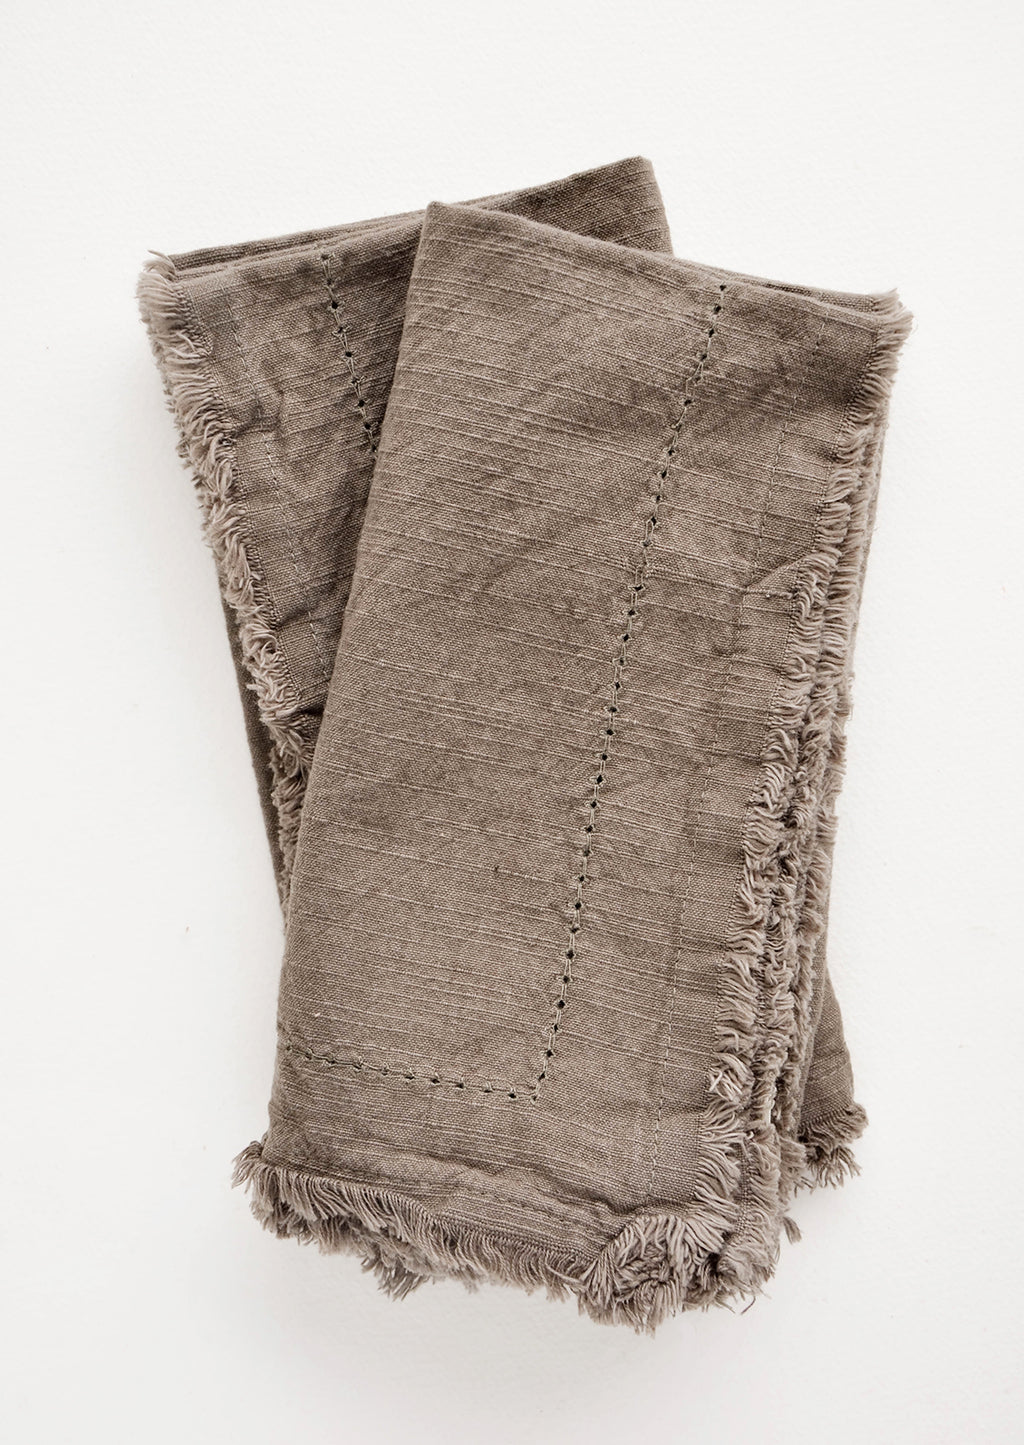 Fatigue: Two folded brown Cotton Napkins with frayed edges .